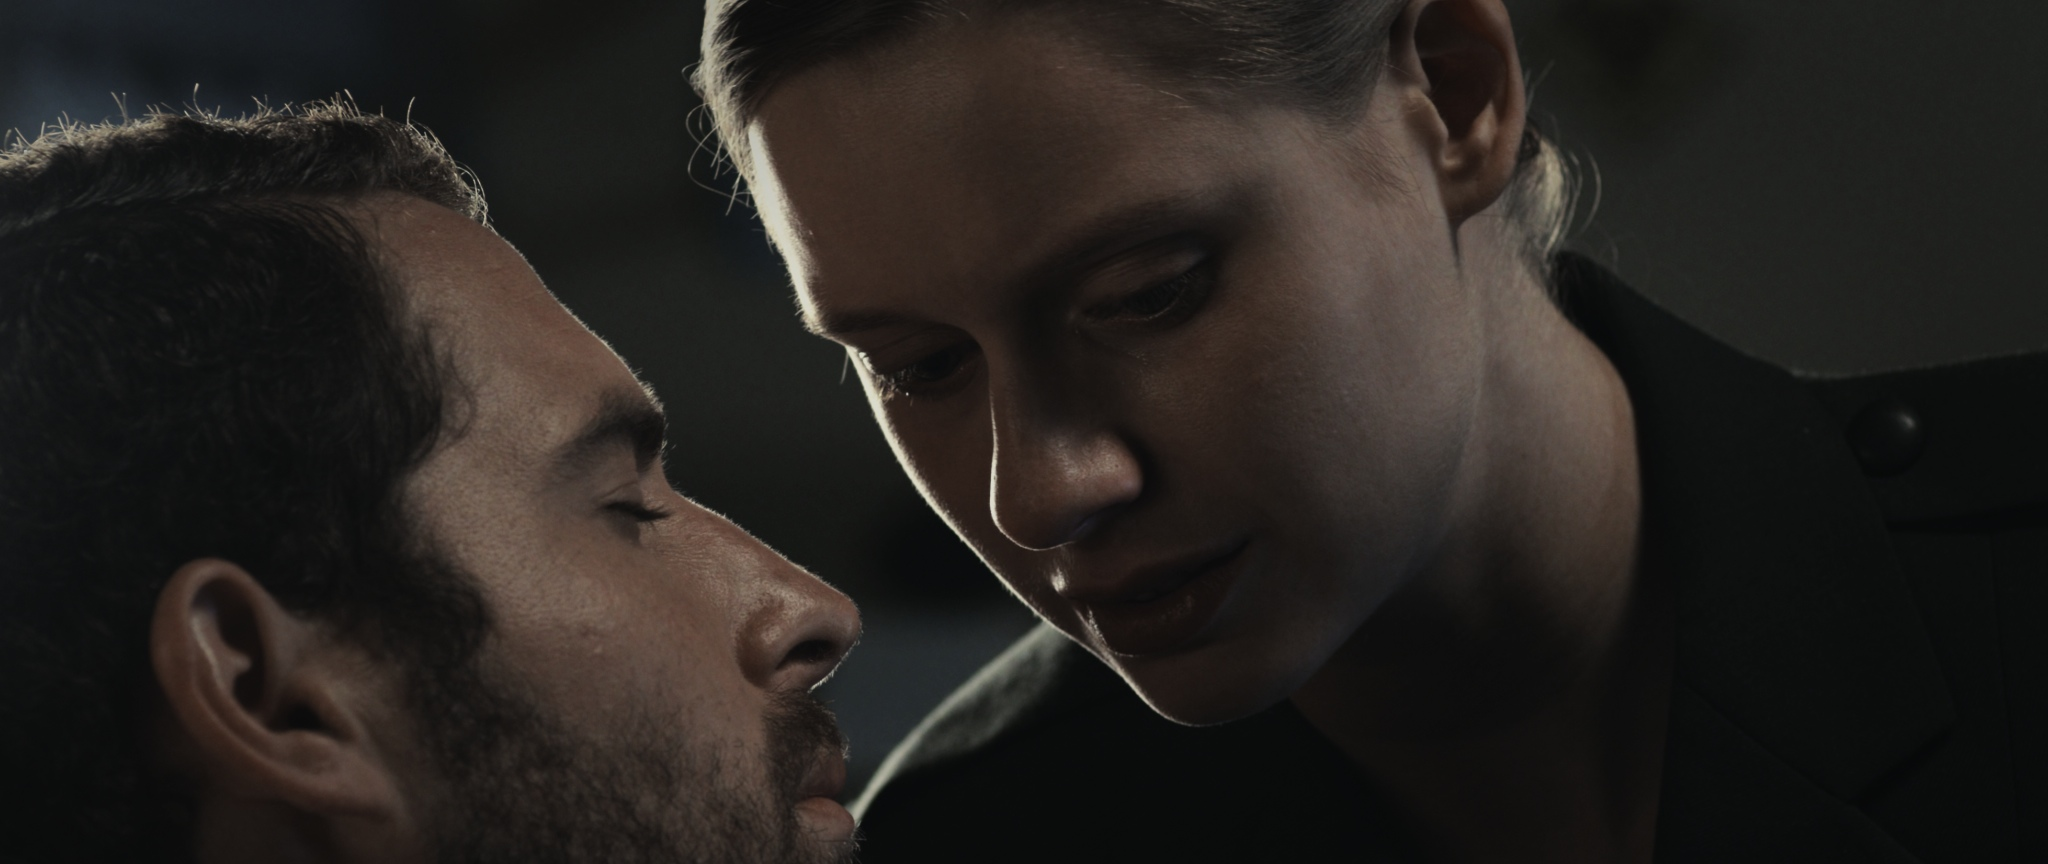 Adam Quintero and Manuela Vellés in Hibernation (2012)